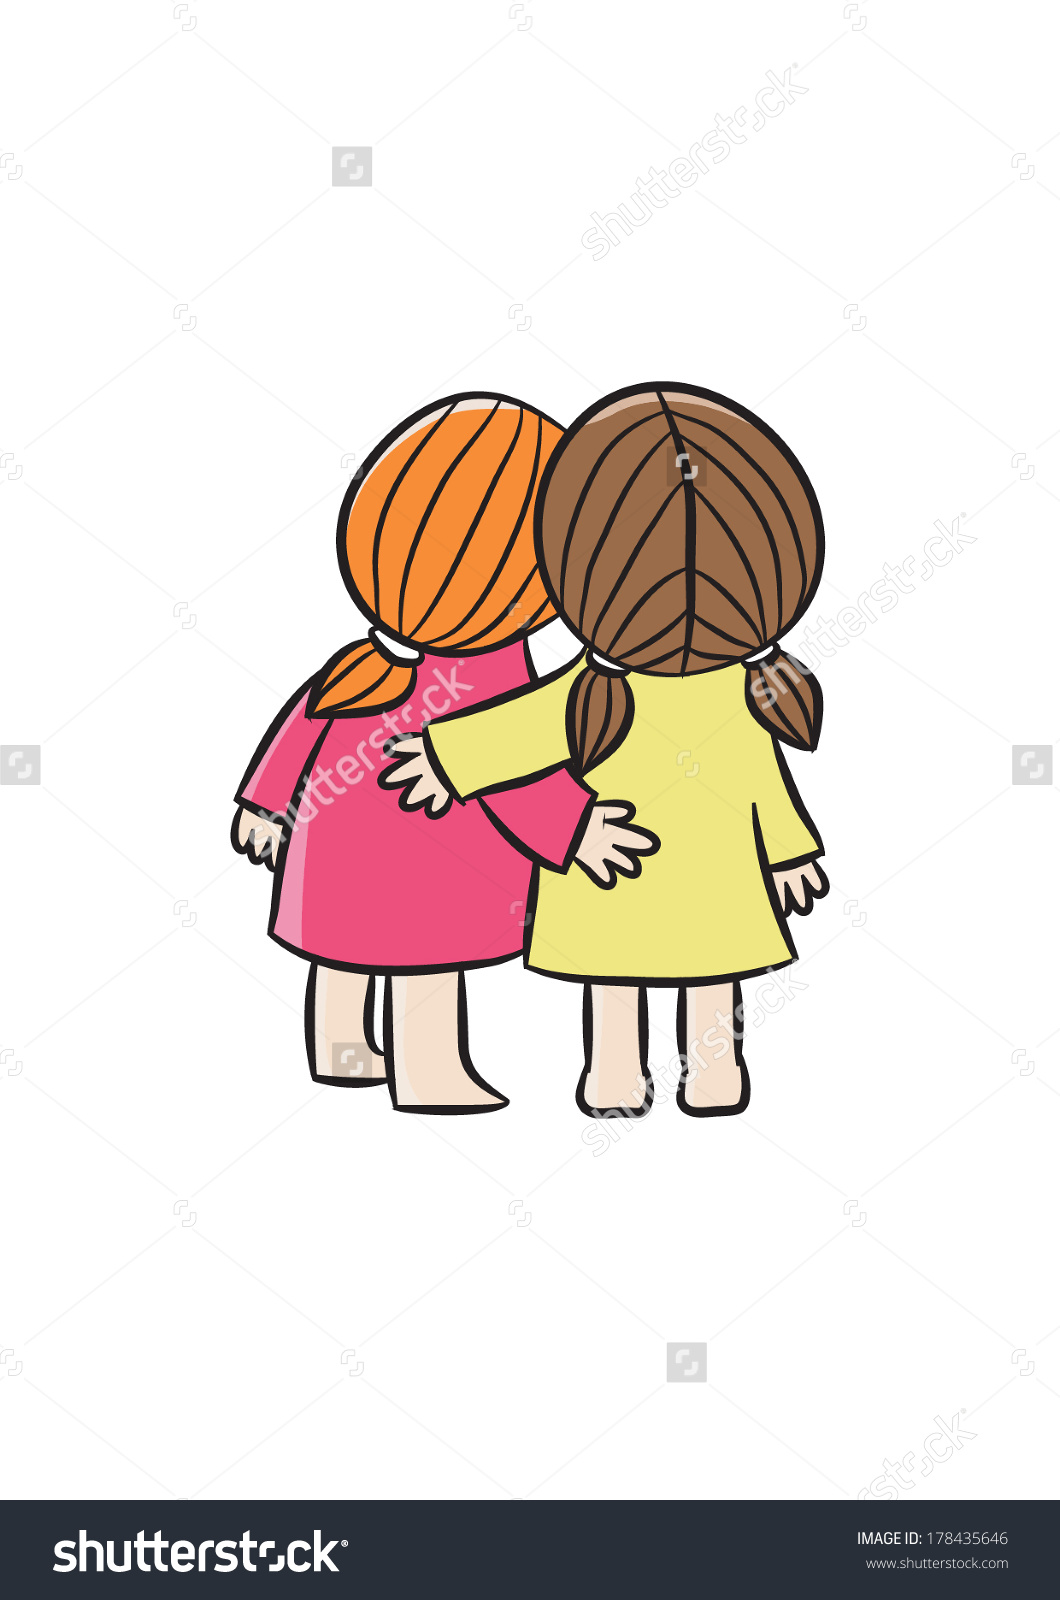 Two Best Friends Stock Vector 178435646.